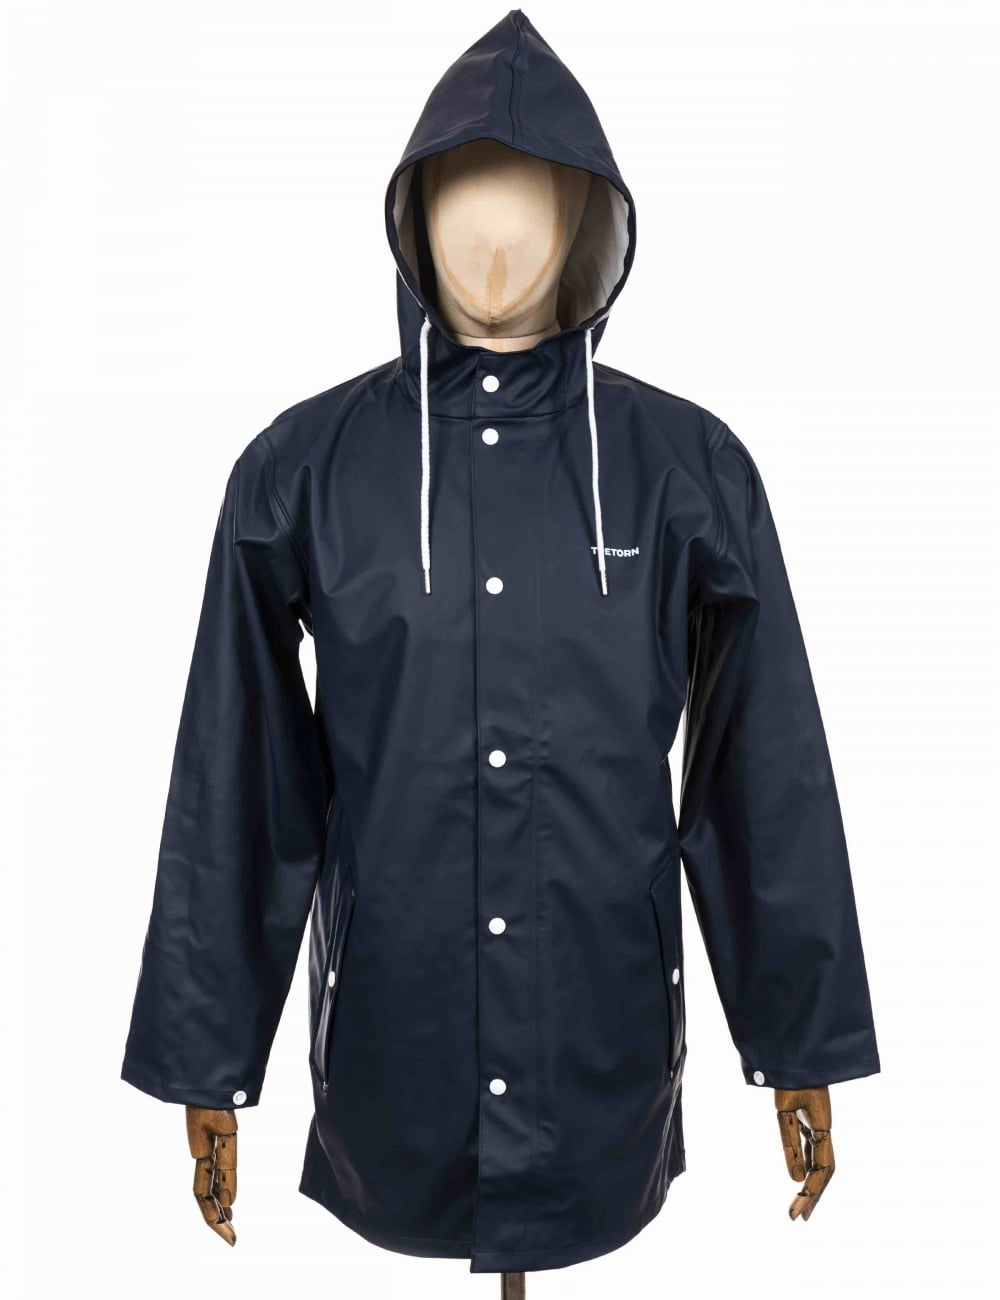 7a9af4a1ff1a3 Tretorn Wings Rain Coat - Navy - Clothing from Fat Buddha Store UK